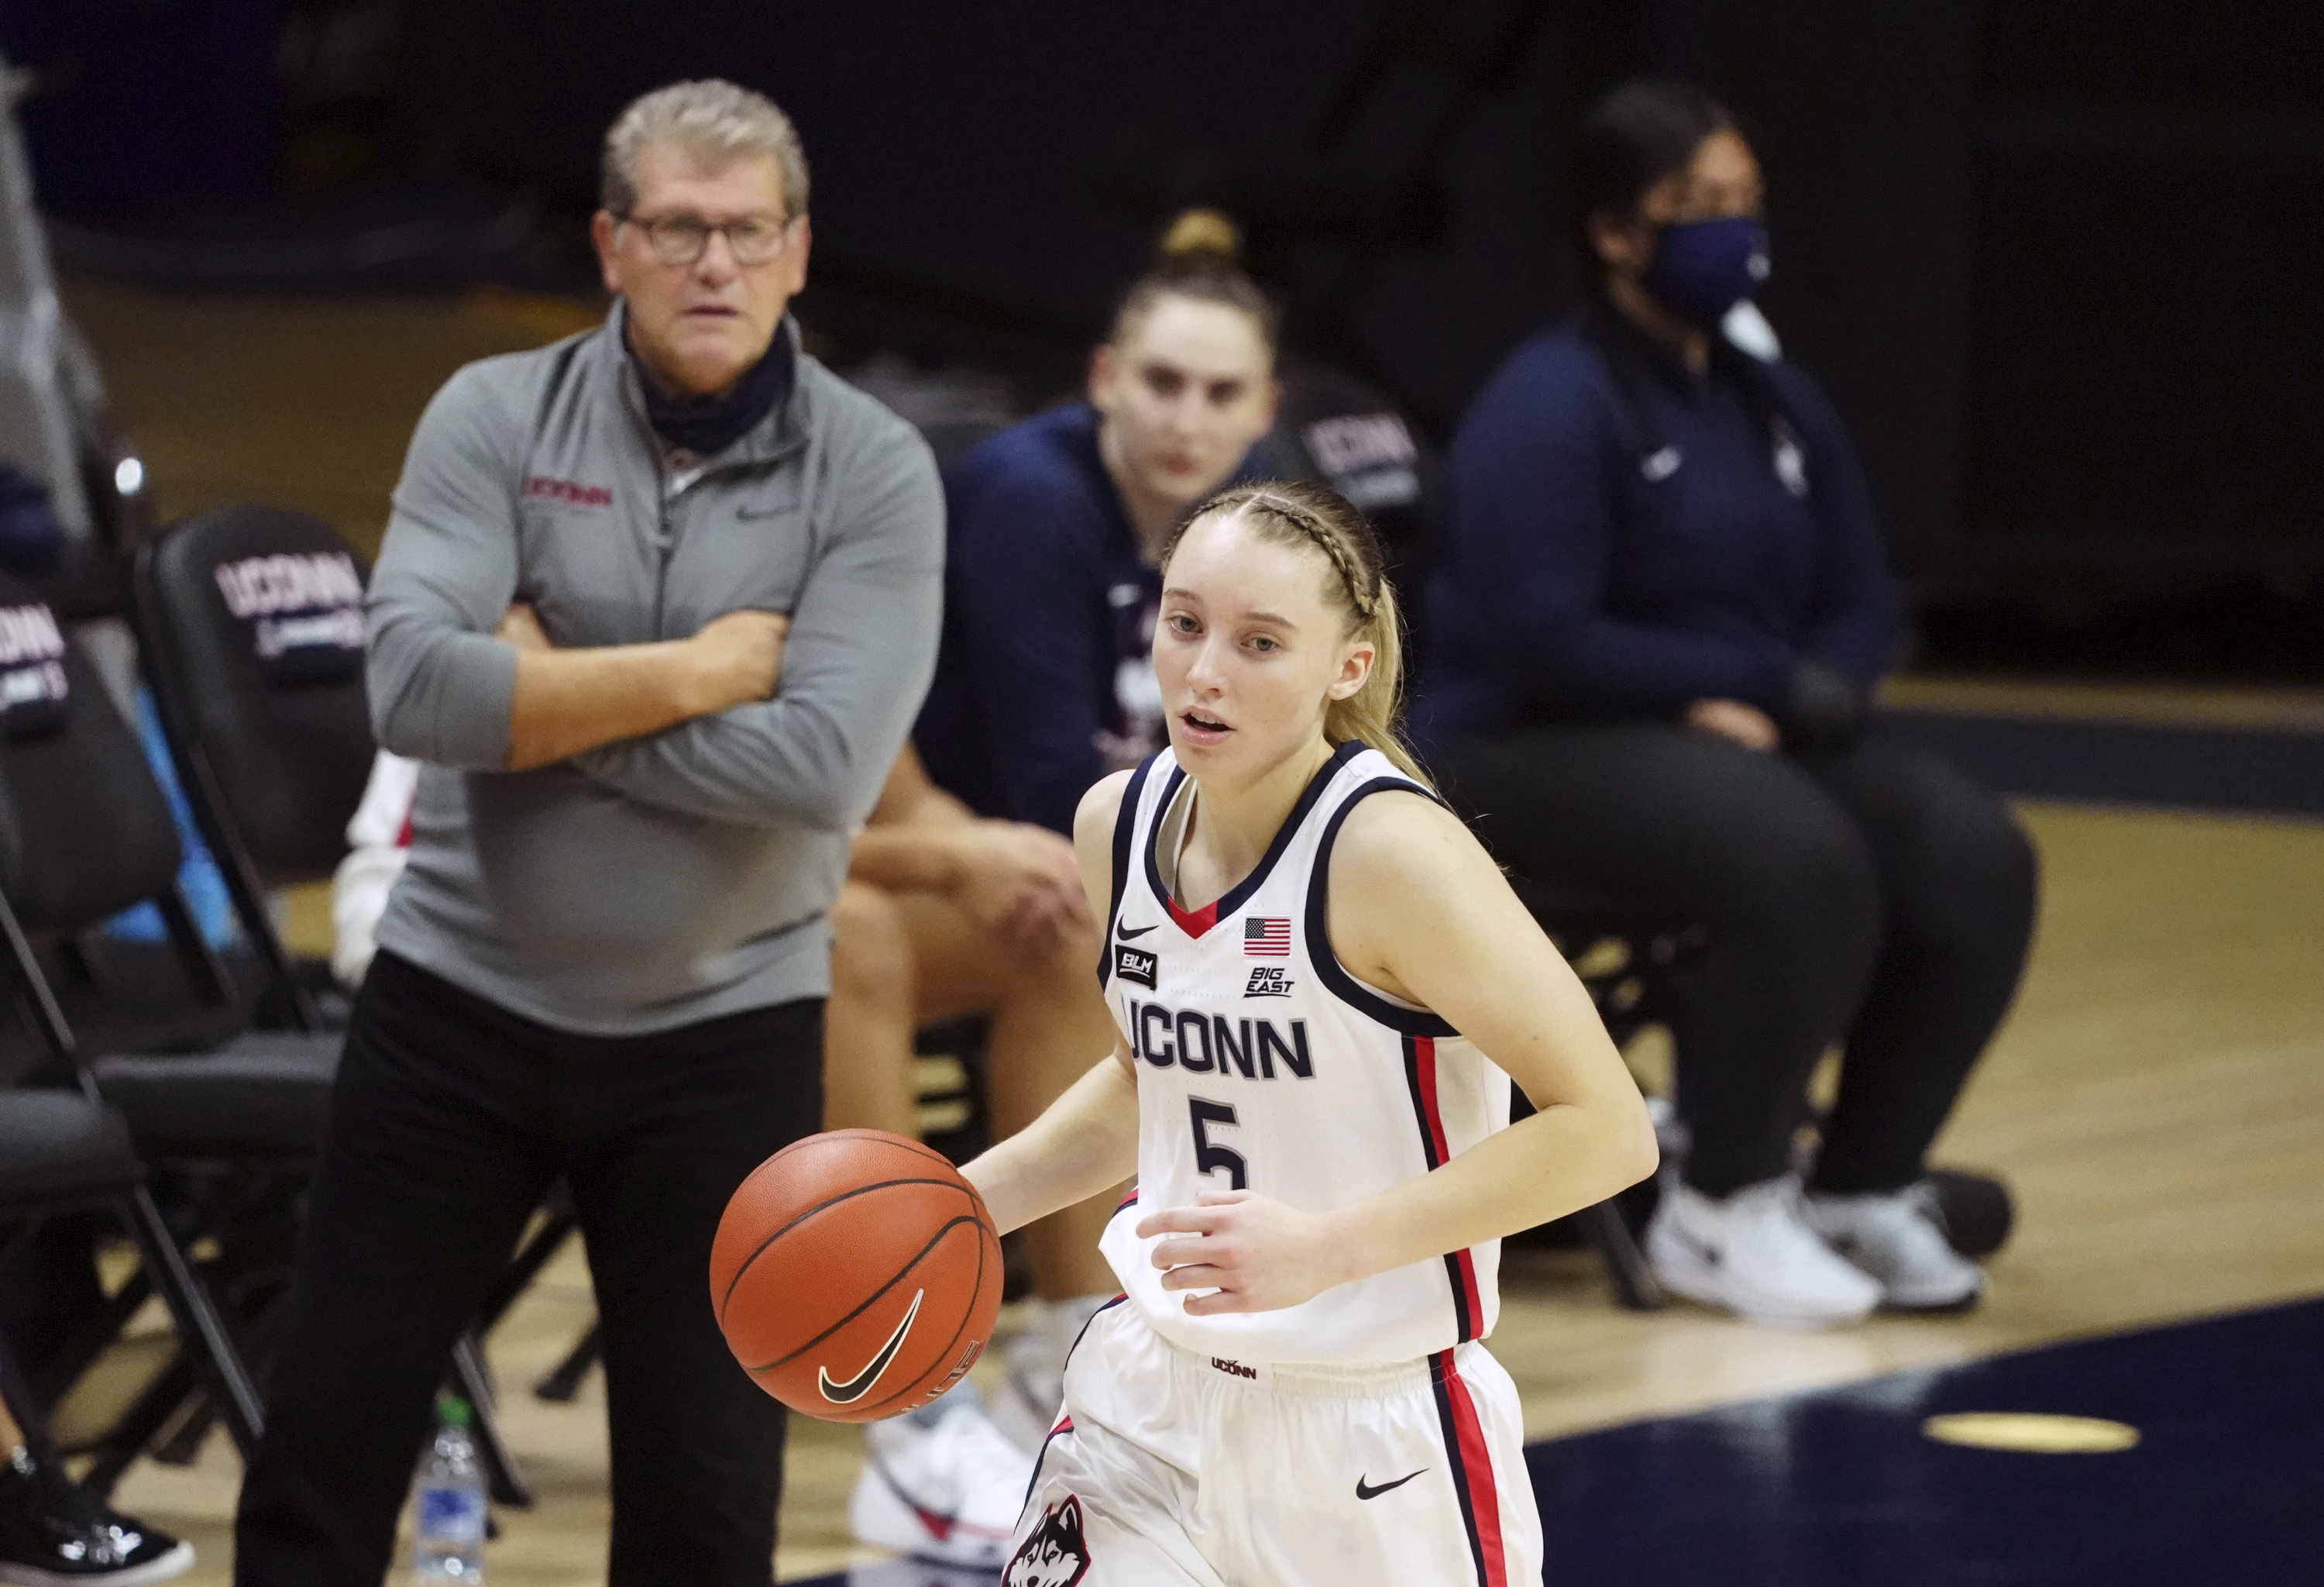 The next part of Paige Bueckers' basketball career is being monitored under the watchful eye of UConn coach Geno Auriemma.